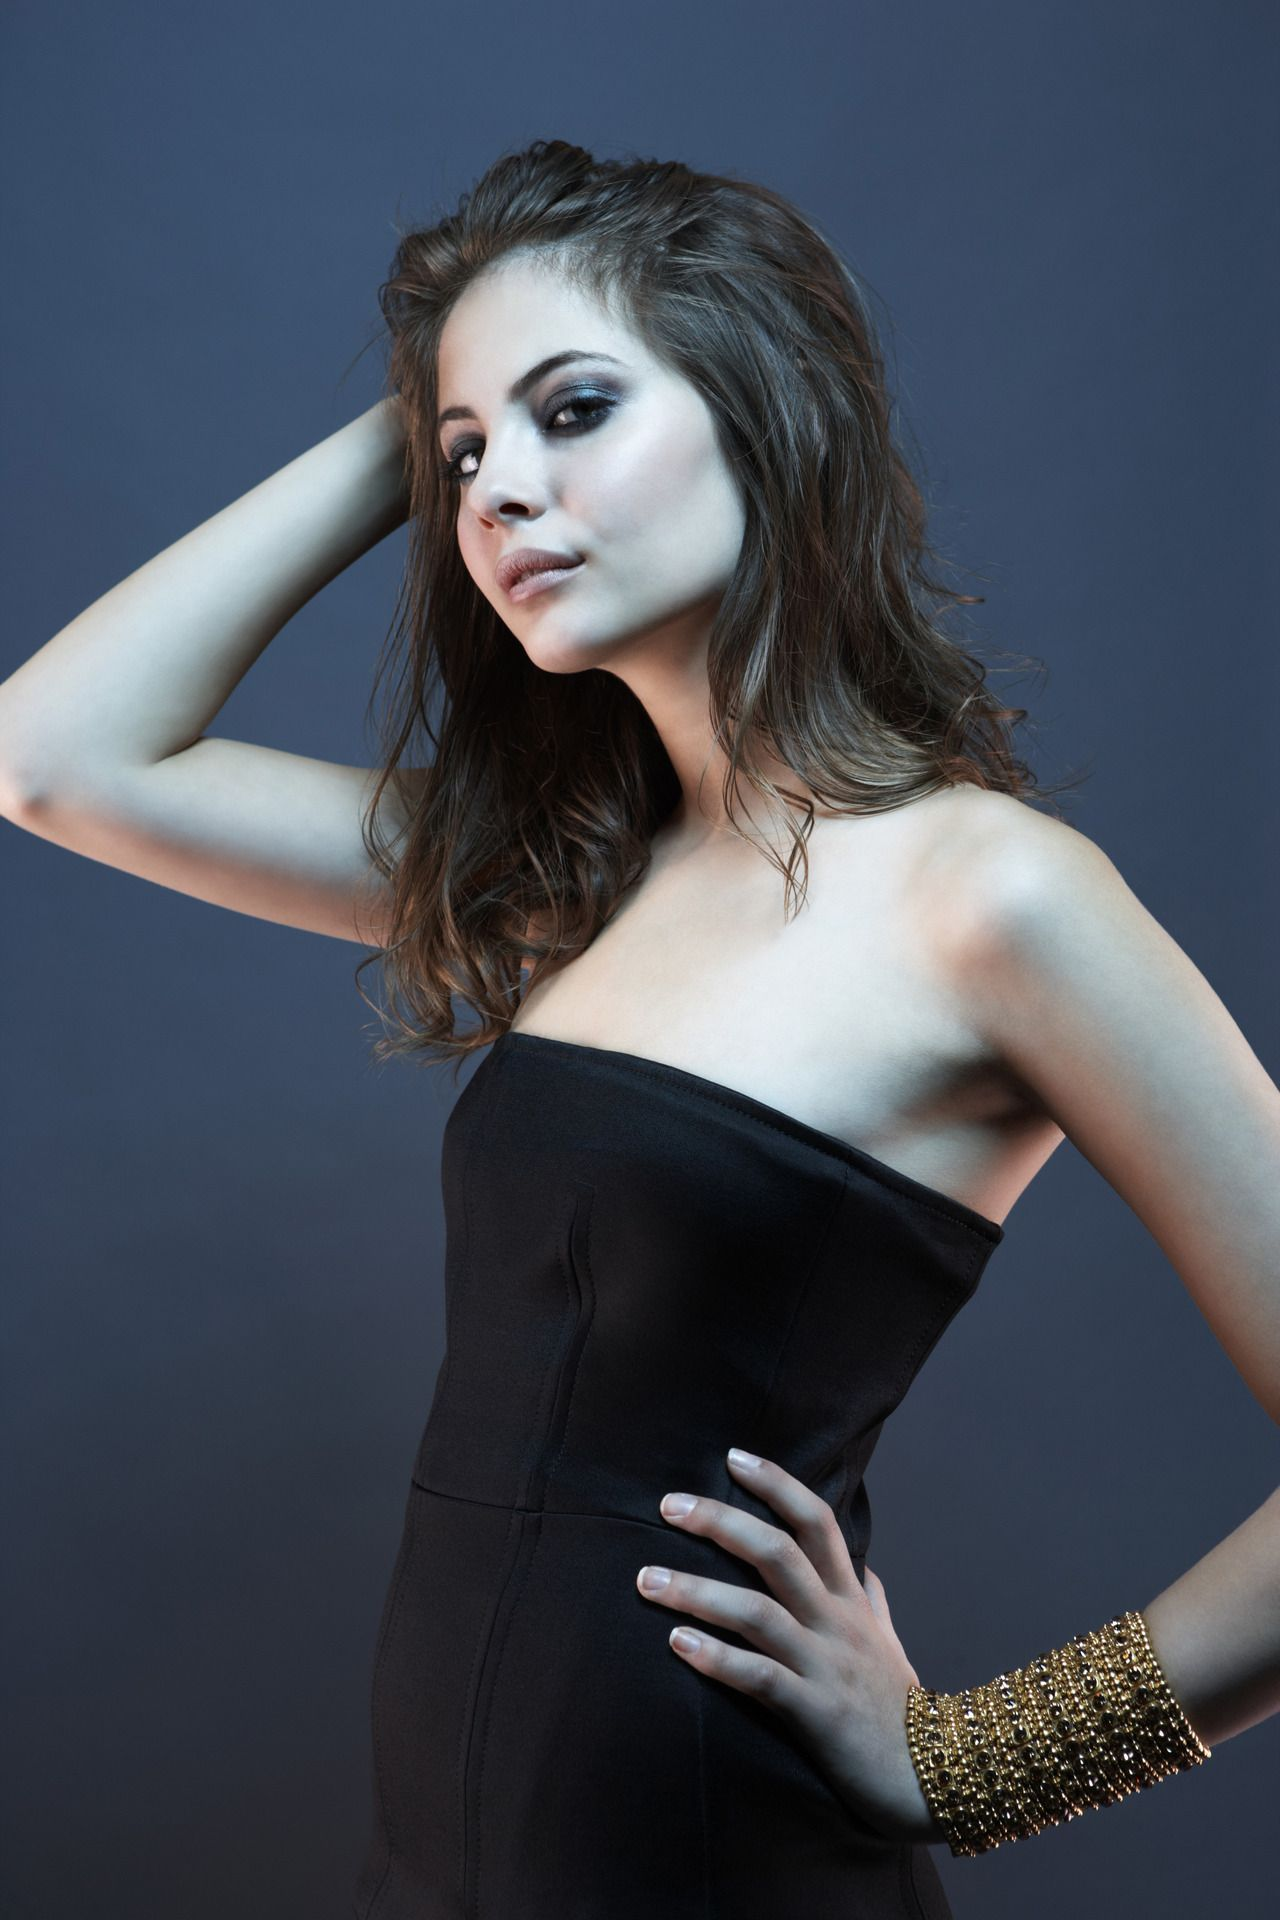 Cleavage Willa Holland nude (41 photo), Topless, Sideboobs, Feet, cleavage 2017